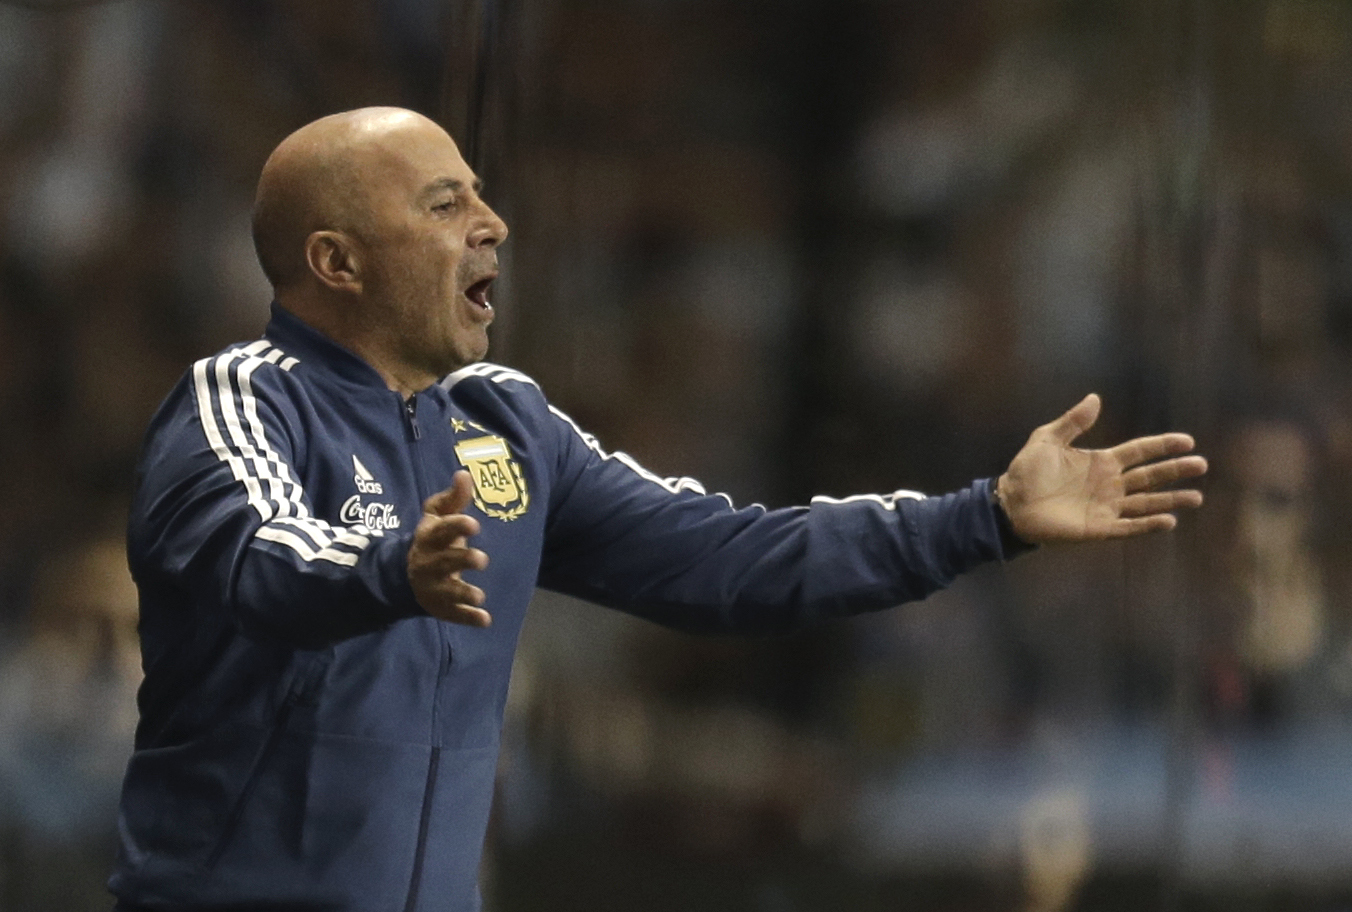 f1b119bb37 Argentina s coach Jorge Sampaoli shouts instructions to his players during  a friendly soccer match between Argentina